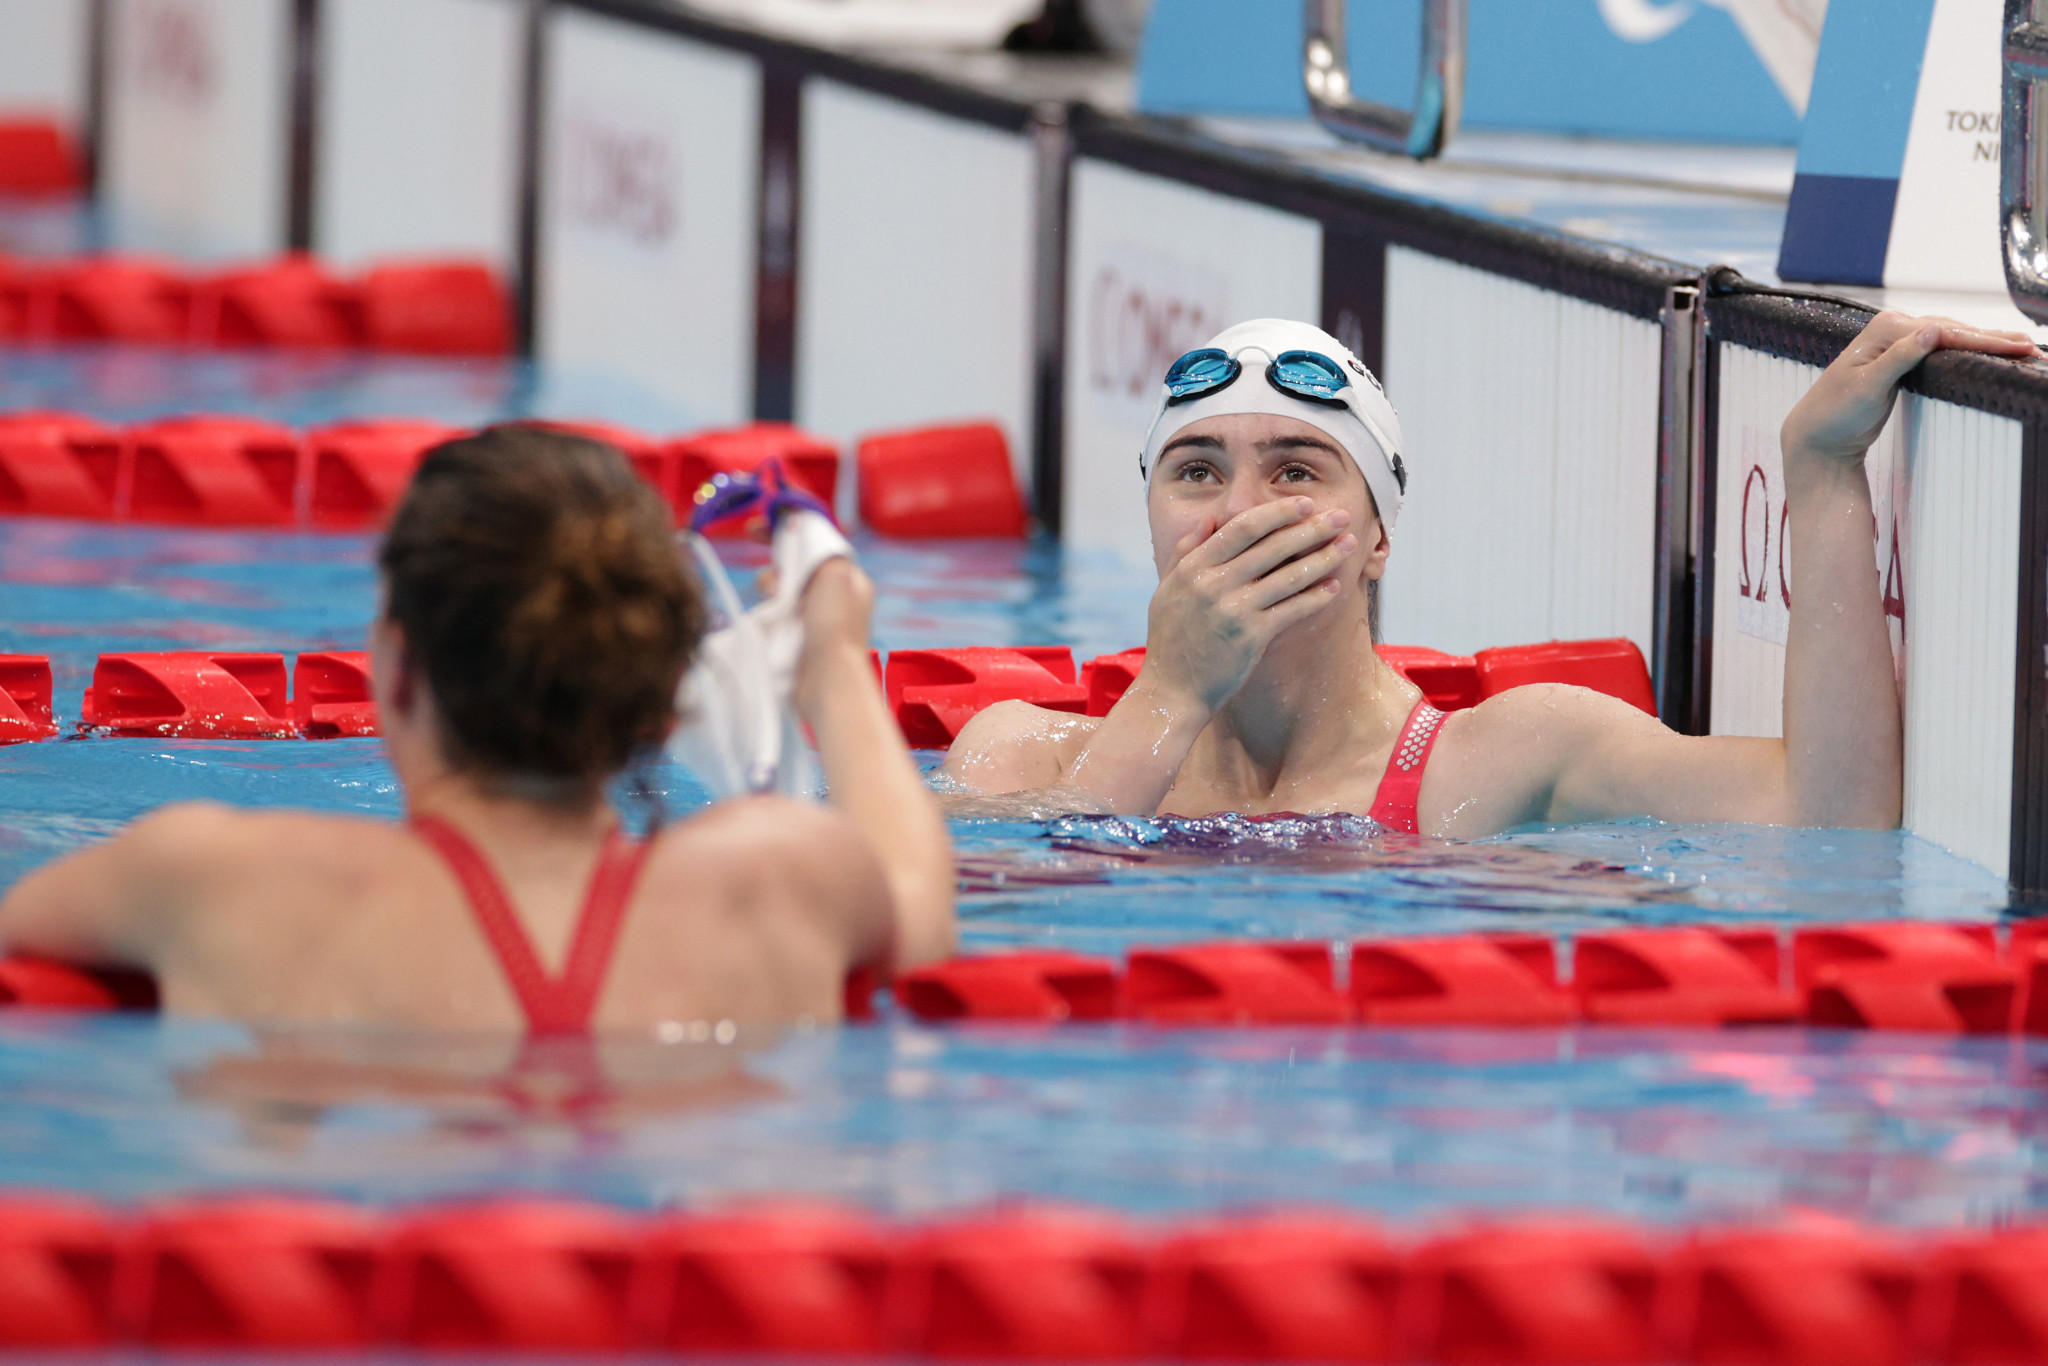 Anastasiia Gontar's time of 27.38 seconds was just 0.01  short of Aurelie Rivard's world record in the women's S10 50m freestyle set at Rio 2016 ©Getty Images